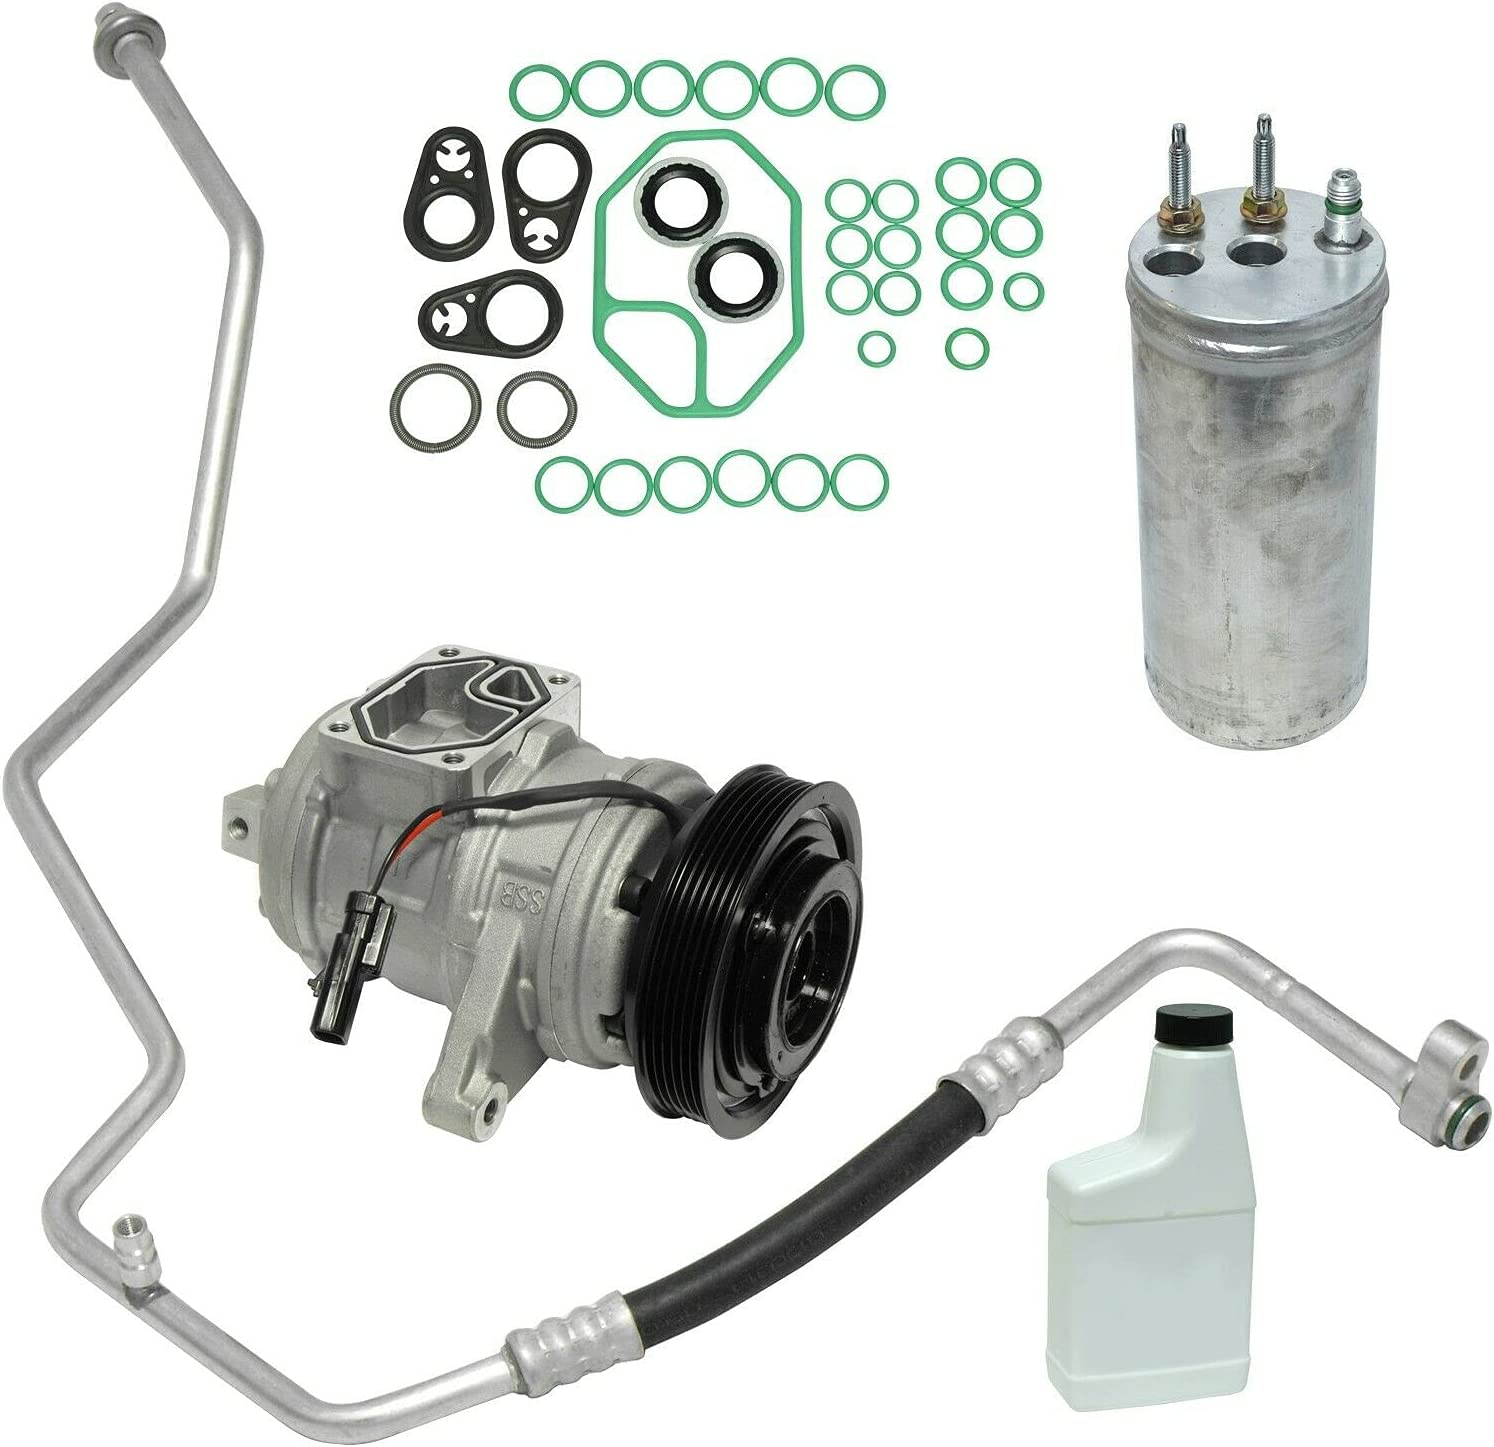 Replacement A C Compressor Kit and Ranking All items in the store integrated 1st place Component